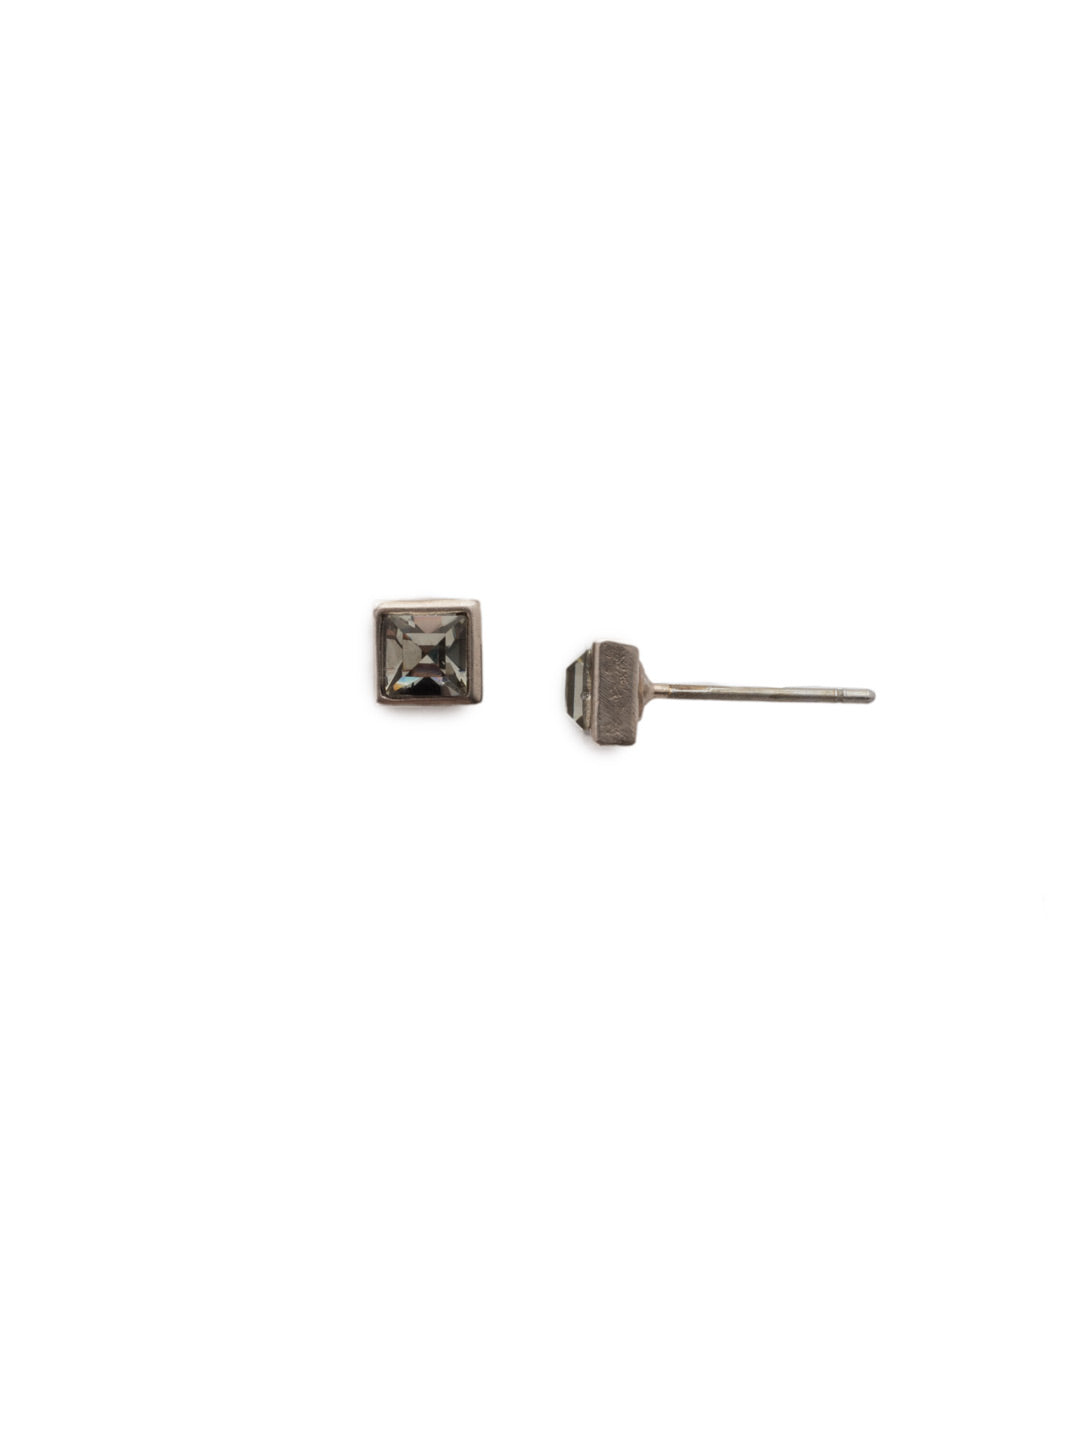 Square Stuff Stud Earrings - ECM53ASSTC